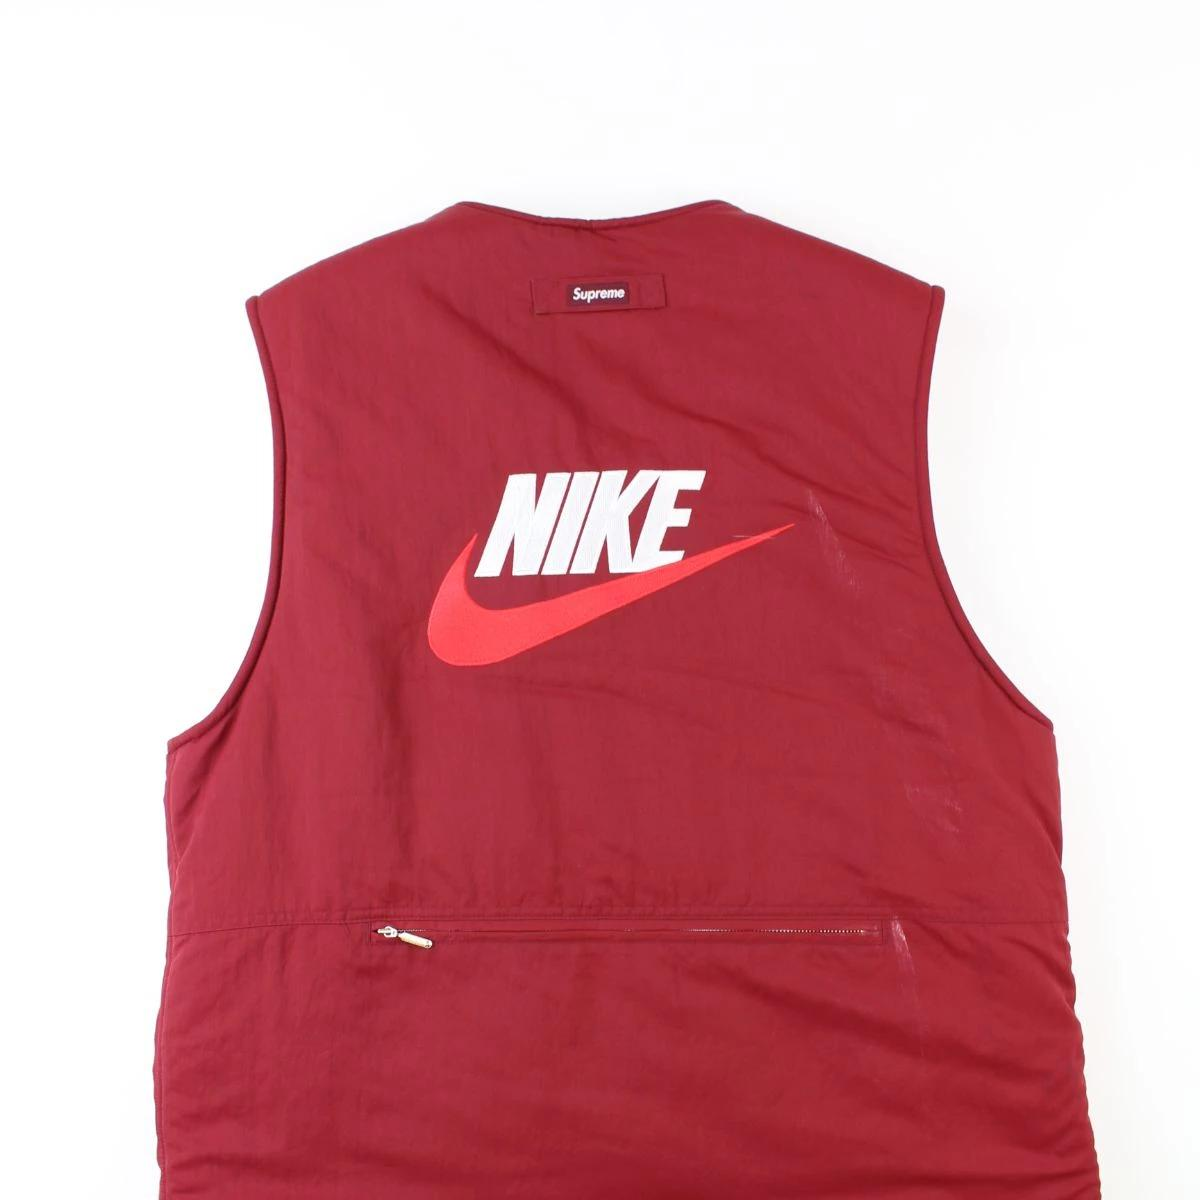 Supreme x Nike Versible Fleece Vest Red - SaruGeneral